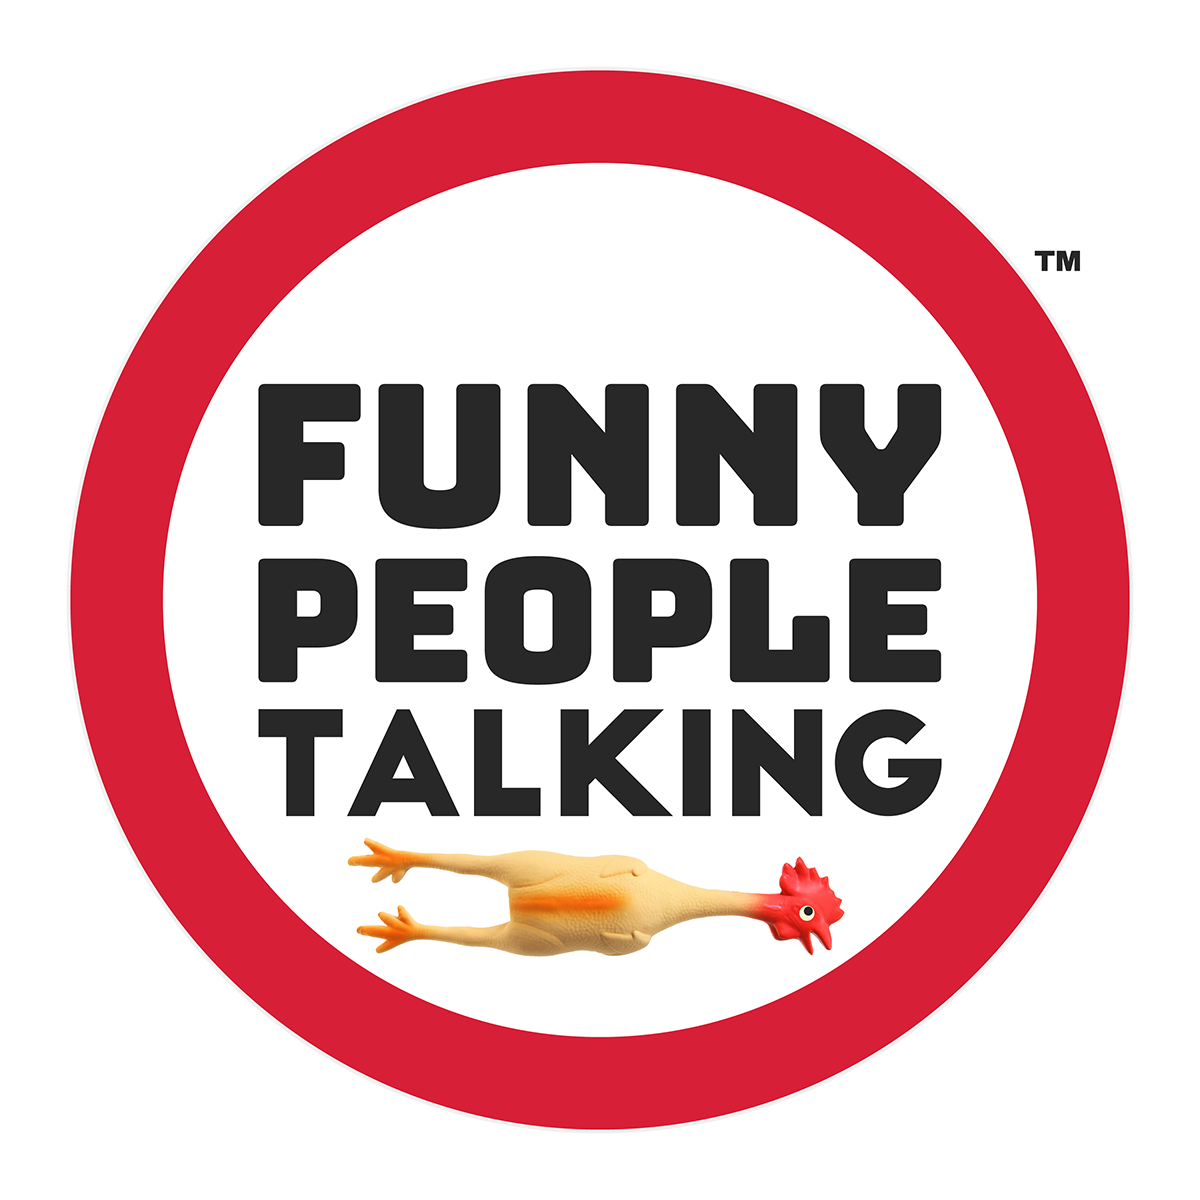 "Funny People Talking - Marc Raco and Danielle Beckmann interview entertainers, influencers, icons, innovators, and incredible people with one thing in common – they're funny. Episodes feature improv games, nerd tips, what's wrong with the world, strange foods presented by deadpan producer Elsie, possible Star Trek references, and a whole universe of things to laugh at (and with). From the same people who brought you ""Monkey Radio with Marc."""